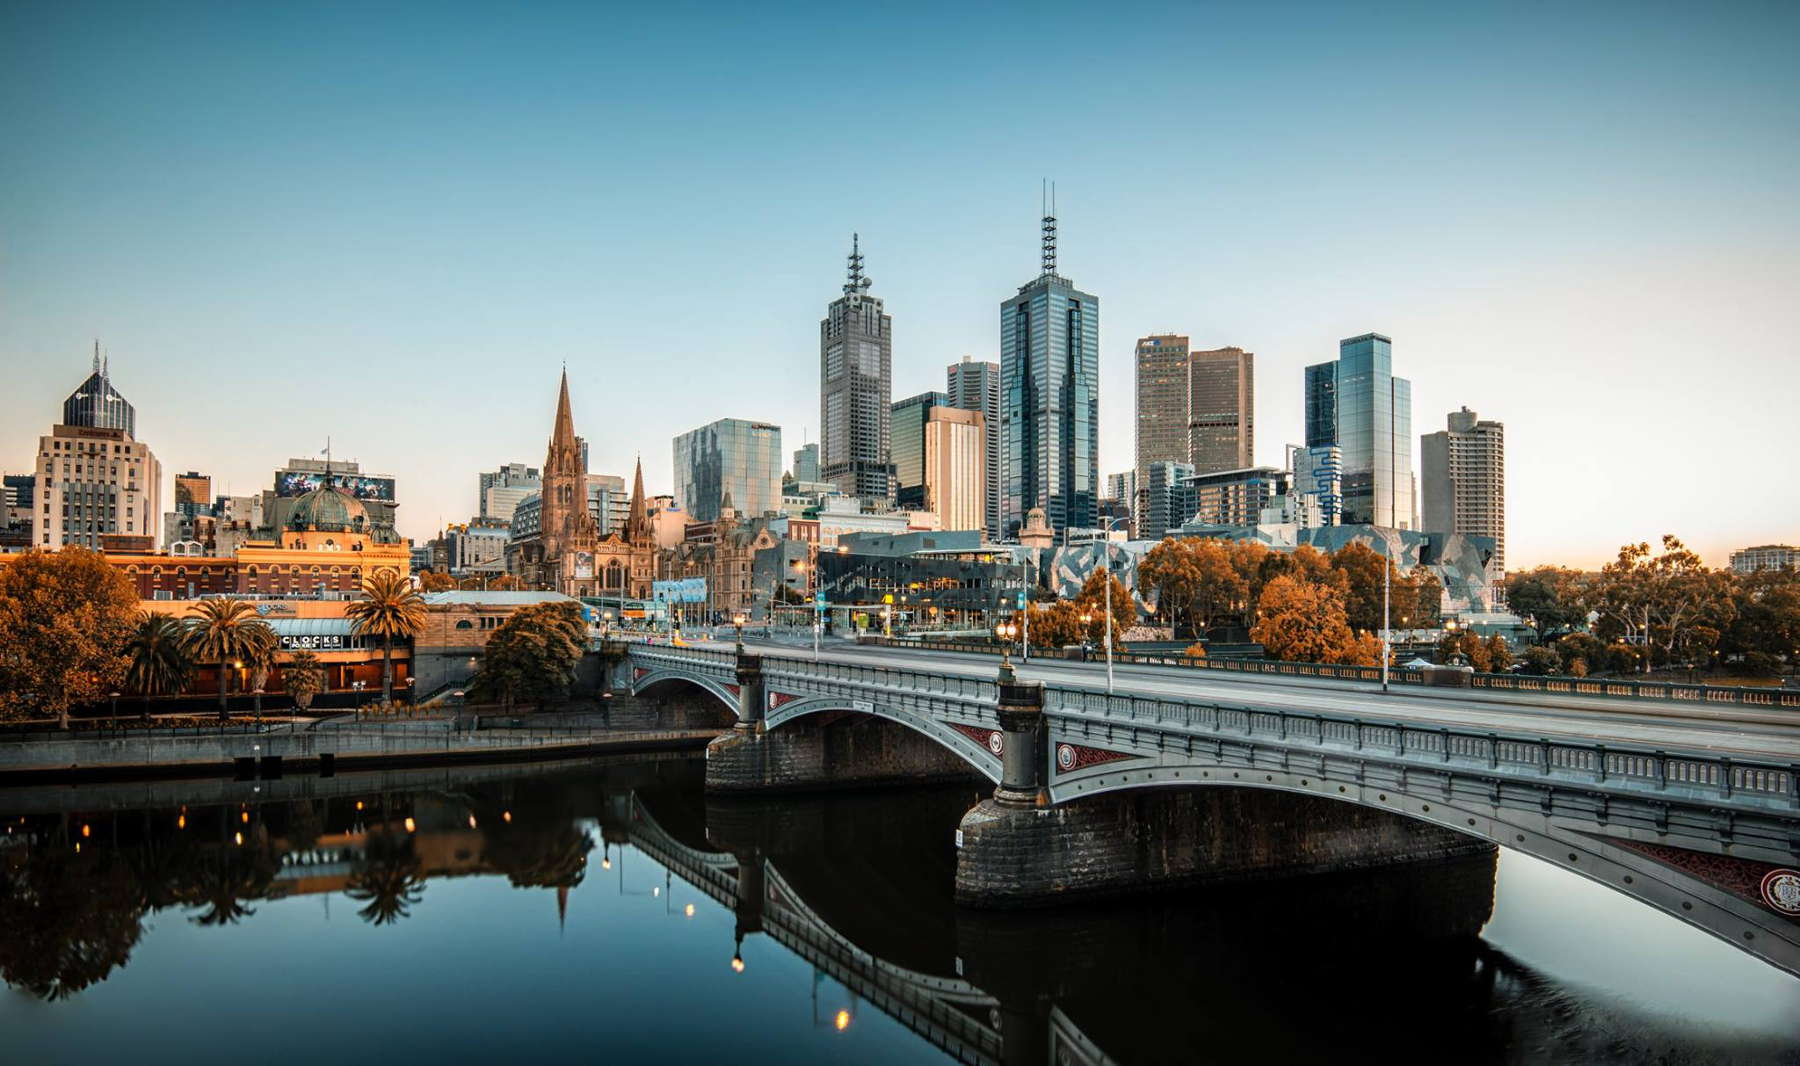 Photography Courses workshops for beginners - Melbourne Focus Beginner photography courses melbourne